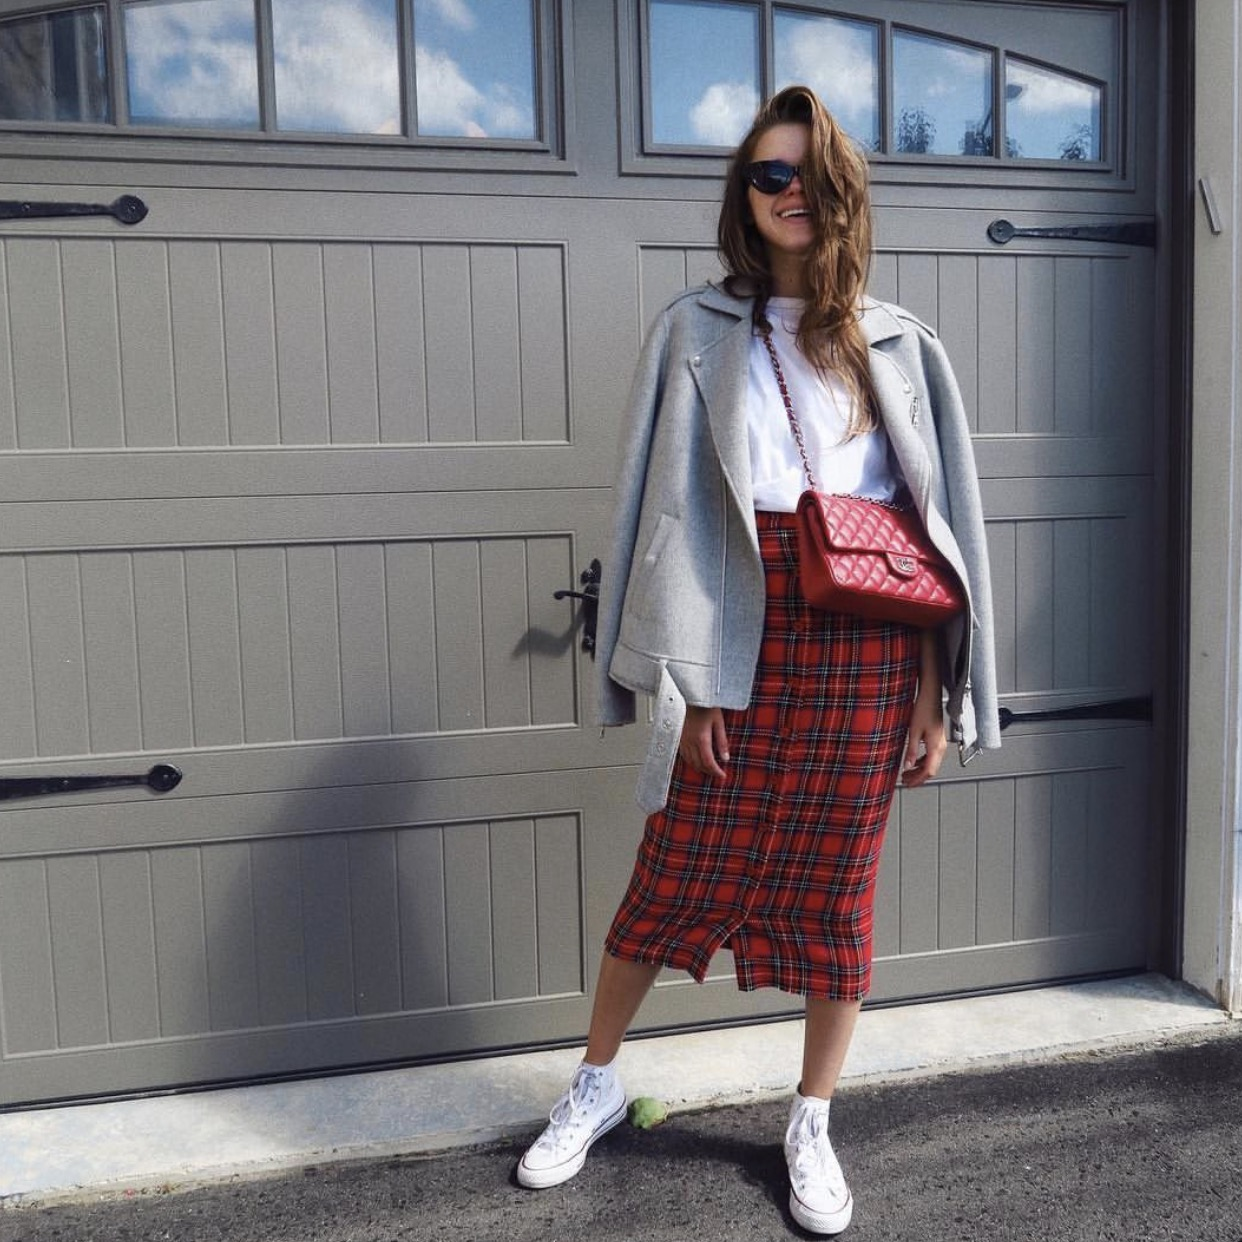 Tshirt: TopShop  HERE   Skirt: Vintage, similar  HERE   Jacket: Theory, similar  HERE  Shoes: Converse  HERE   Sunglasses: Vintage, similar  HERE